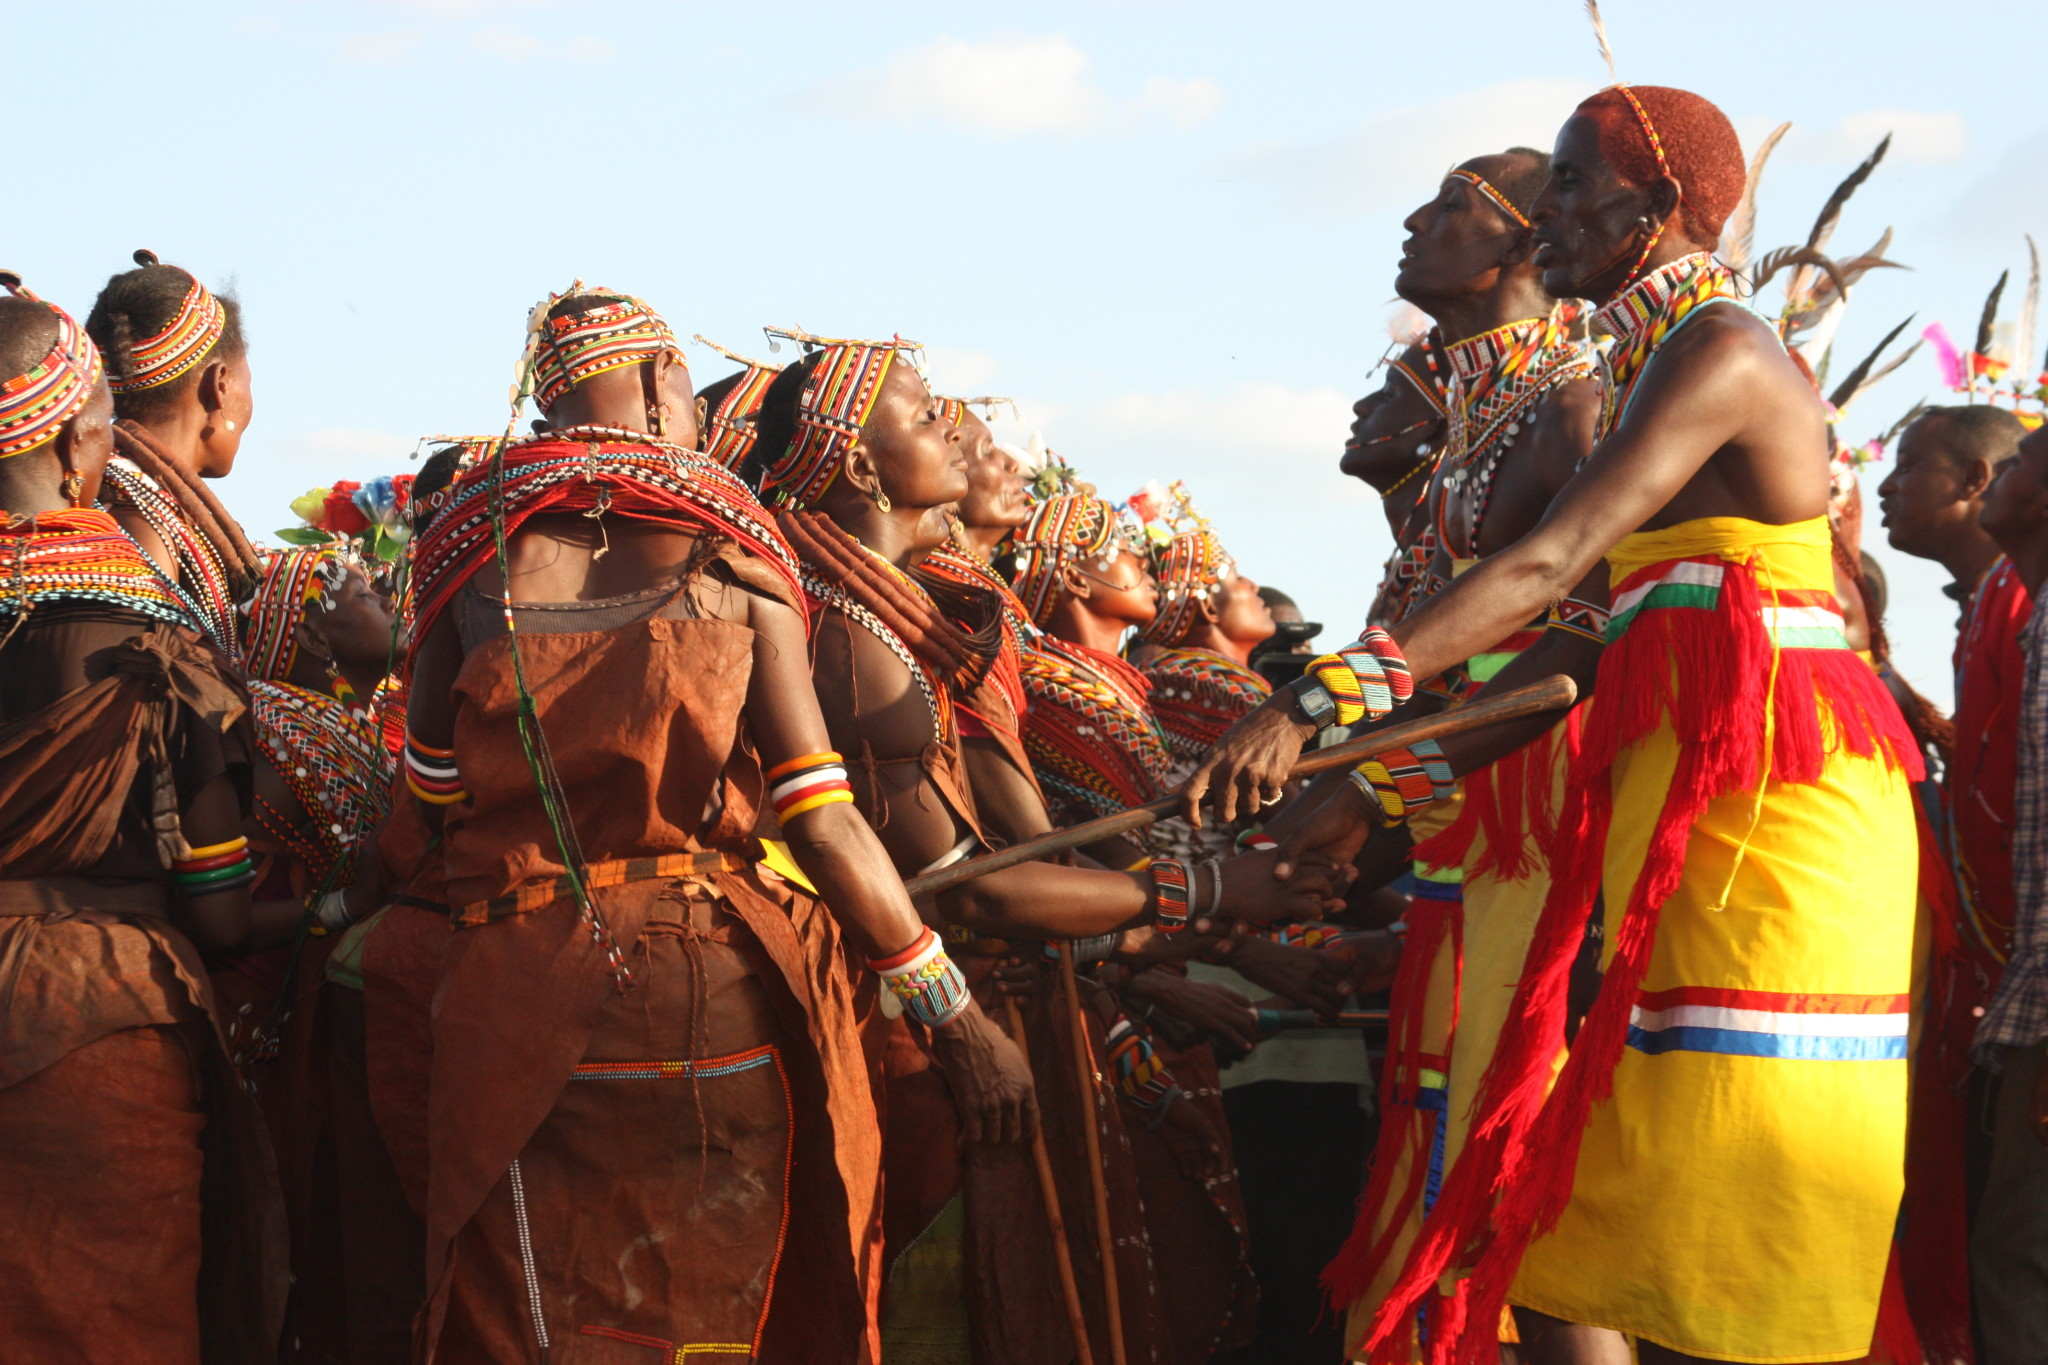 Travel: Marsabit Lake Turkana Festival is happening this weekend